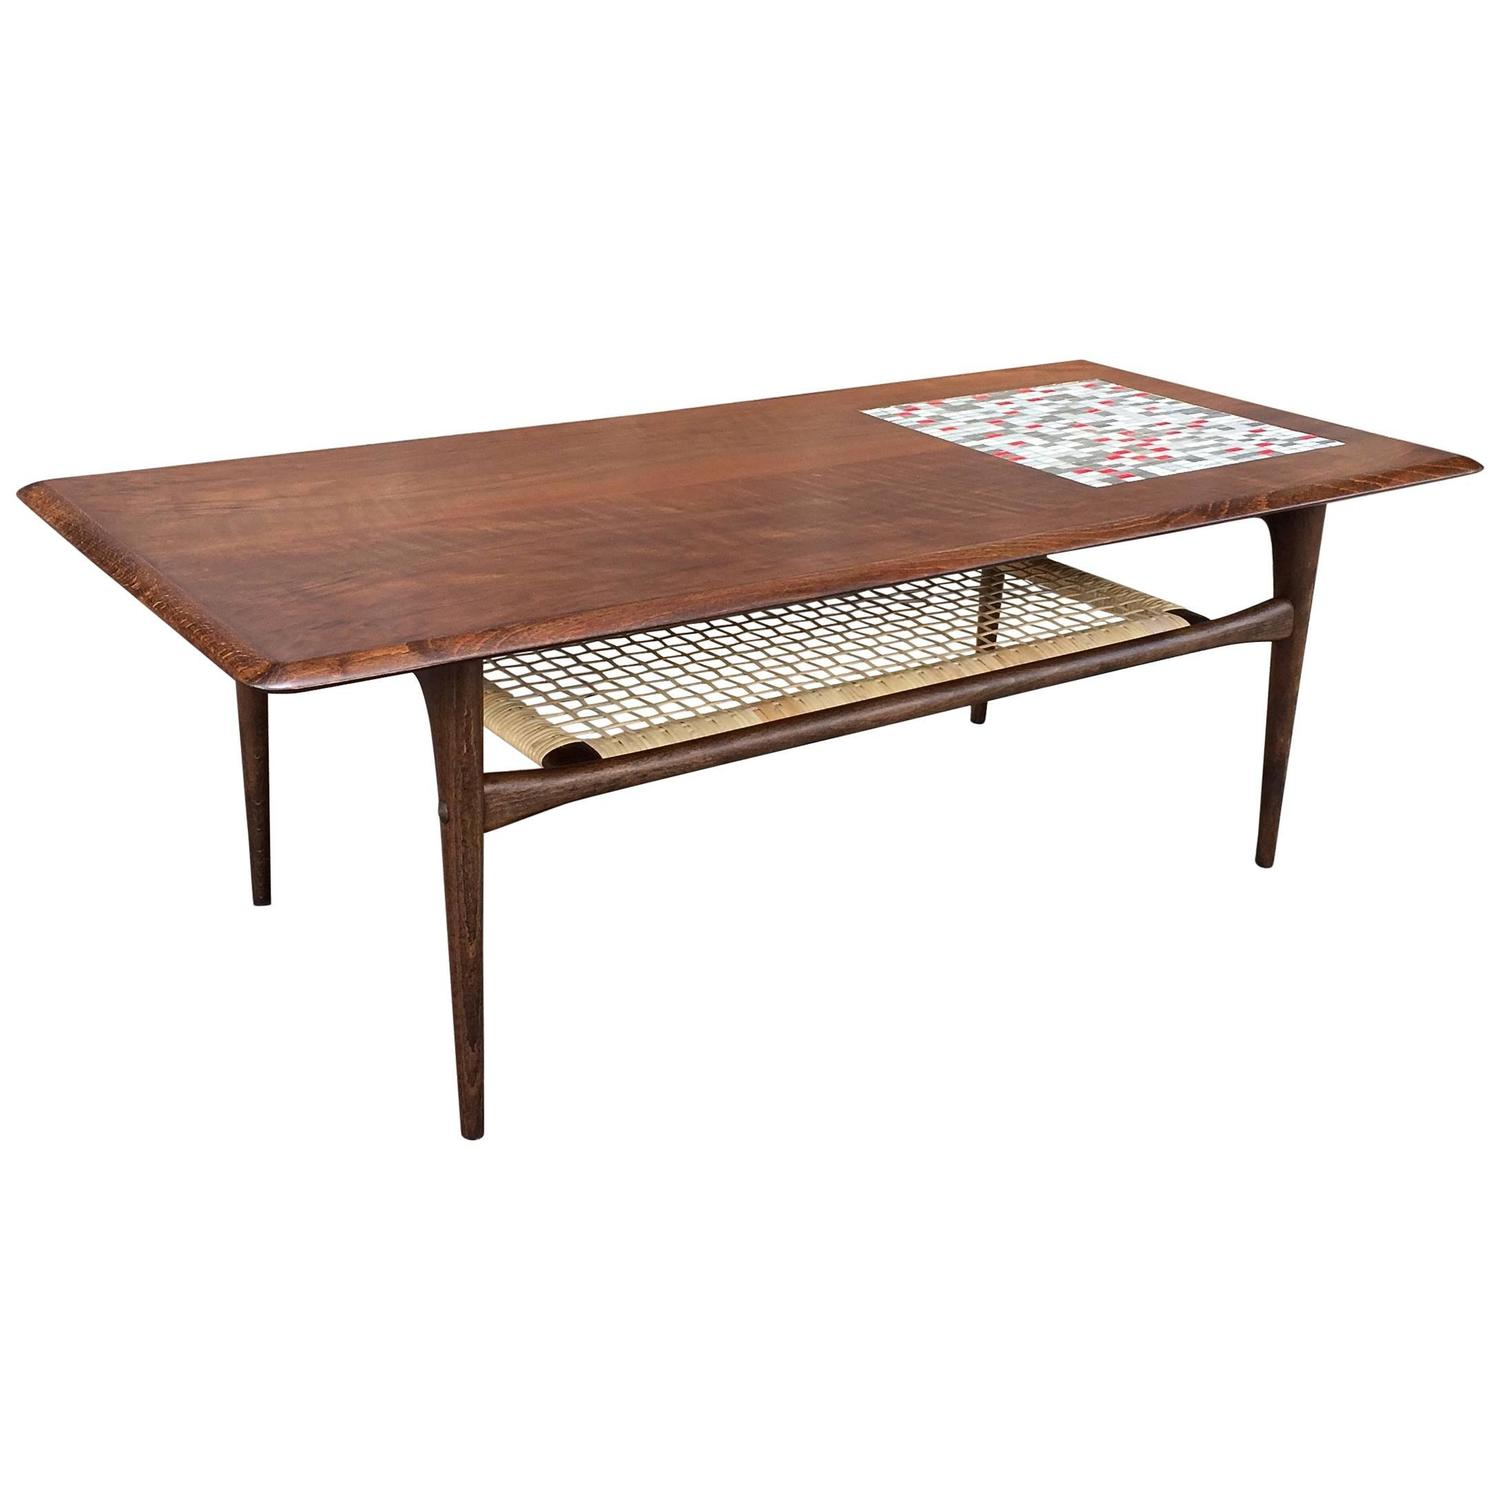 Mosaic Coffee Tables 178 For Sale on 1stdibs